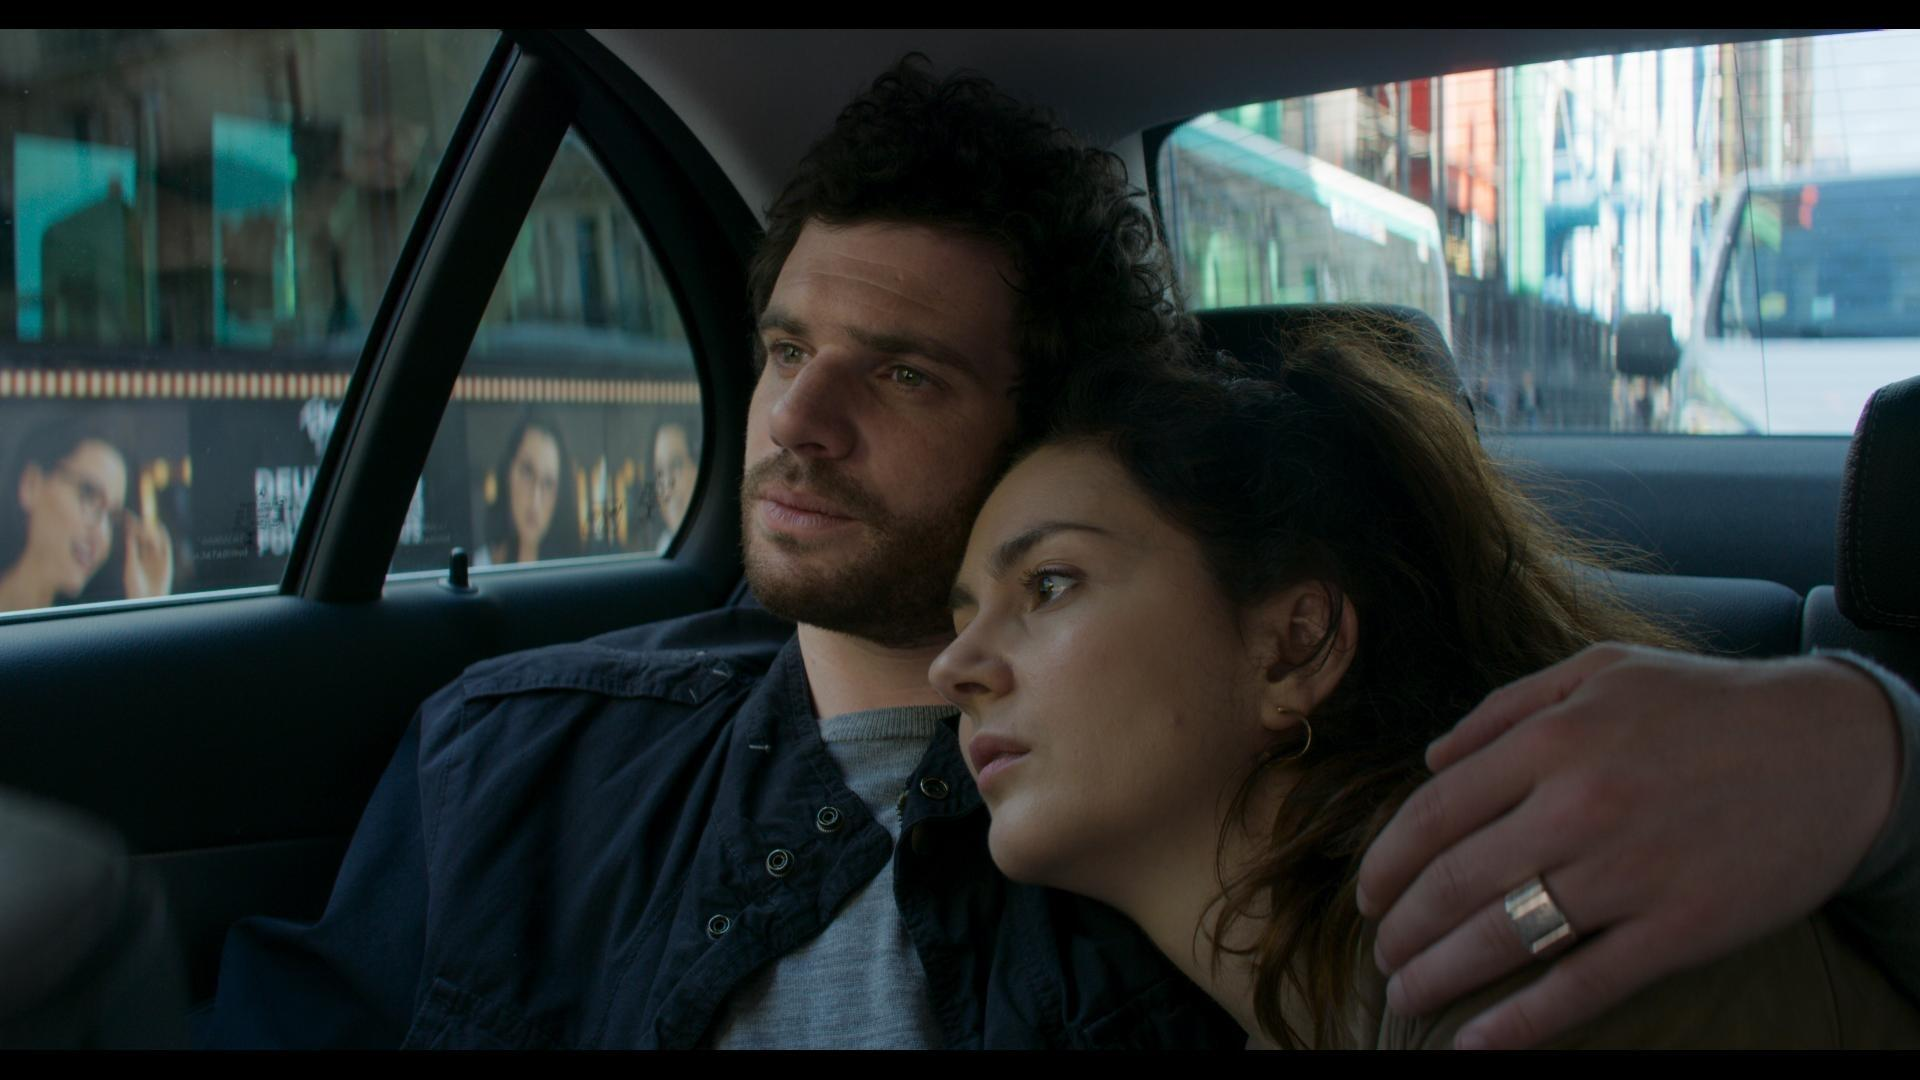 """No Man's Land -- """"Episode 1"""" -Episode 101 -- 2014. Antoine, a young Frenchman, is watching a news report from Syria when he's convinced that he spots his dead sister, Anna, in the background. Desperate to know the truth, he leaves Paris to find her. When crossing into Syria, he's almost kidnapped by ISIS, but they are attacked by the YPJ, a Kurdish all-female militia. Antoine (Félix Moati), shown. (Photo by: Haut et Court/Hulu)"""